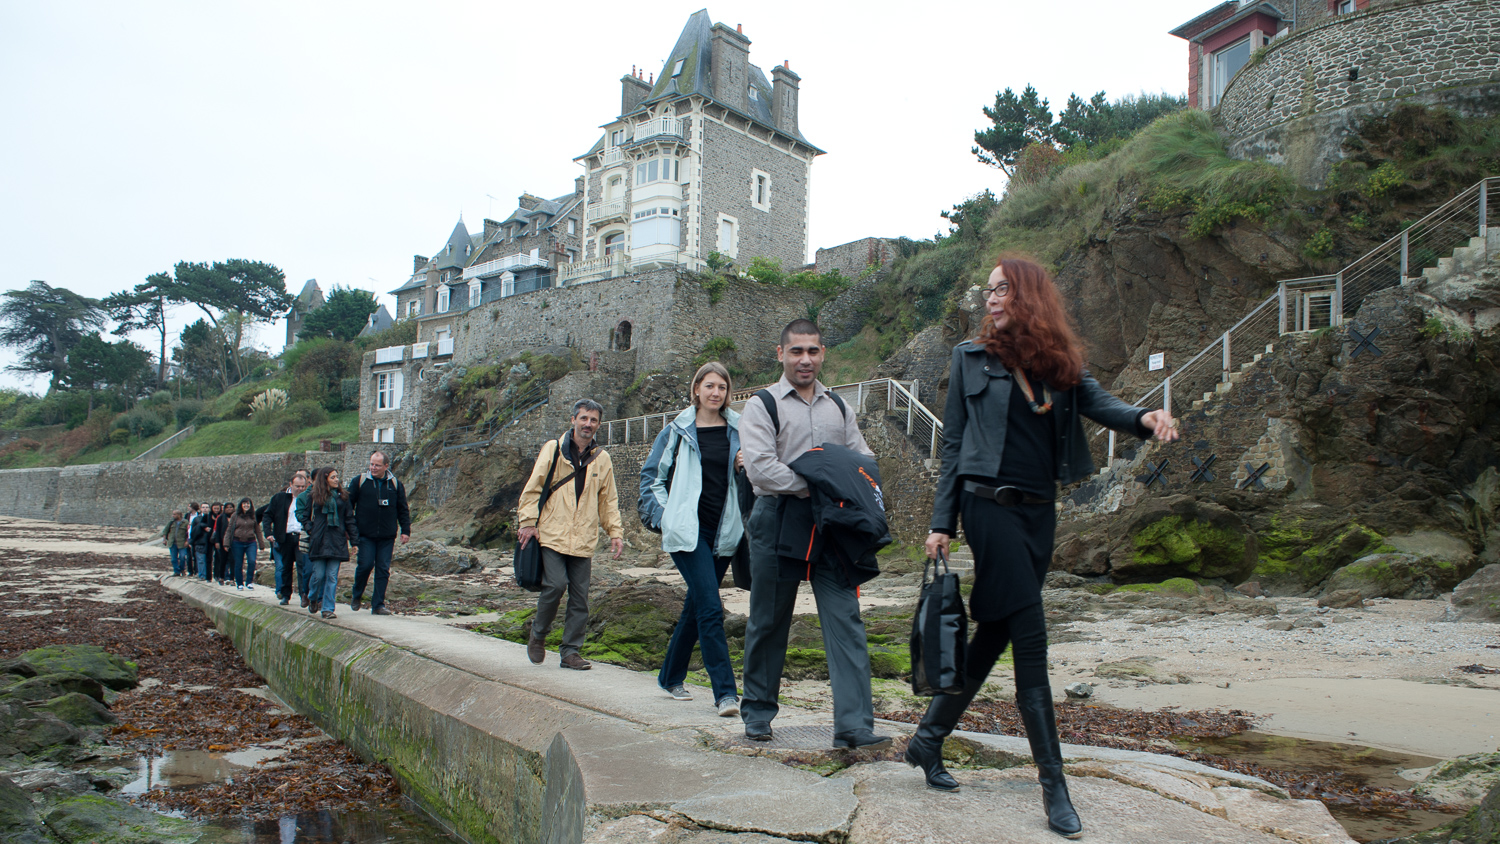 LA COHORTE DE L'EXECUTIVE MBA DE L'ESC SCHOOL OF BUSINESS À DINARD, FRANCE